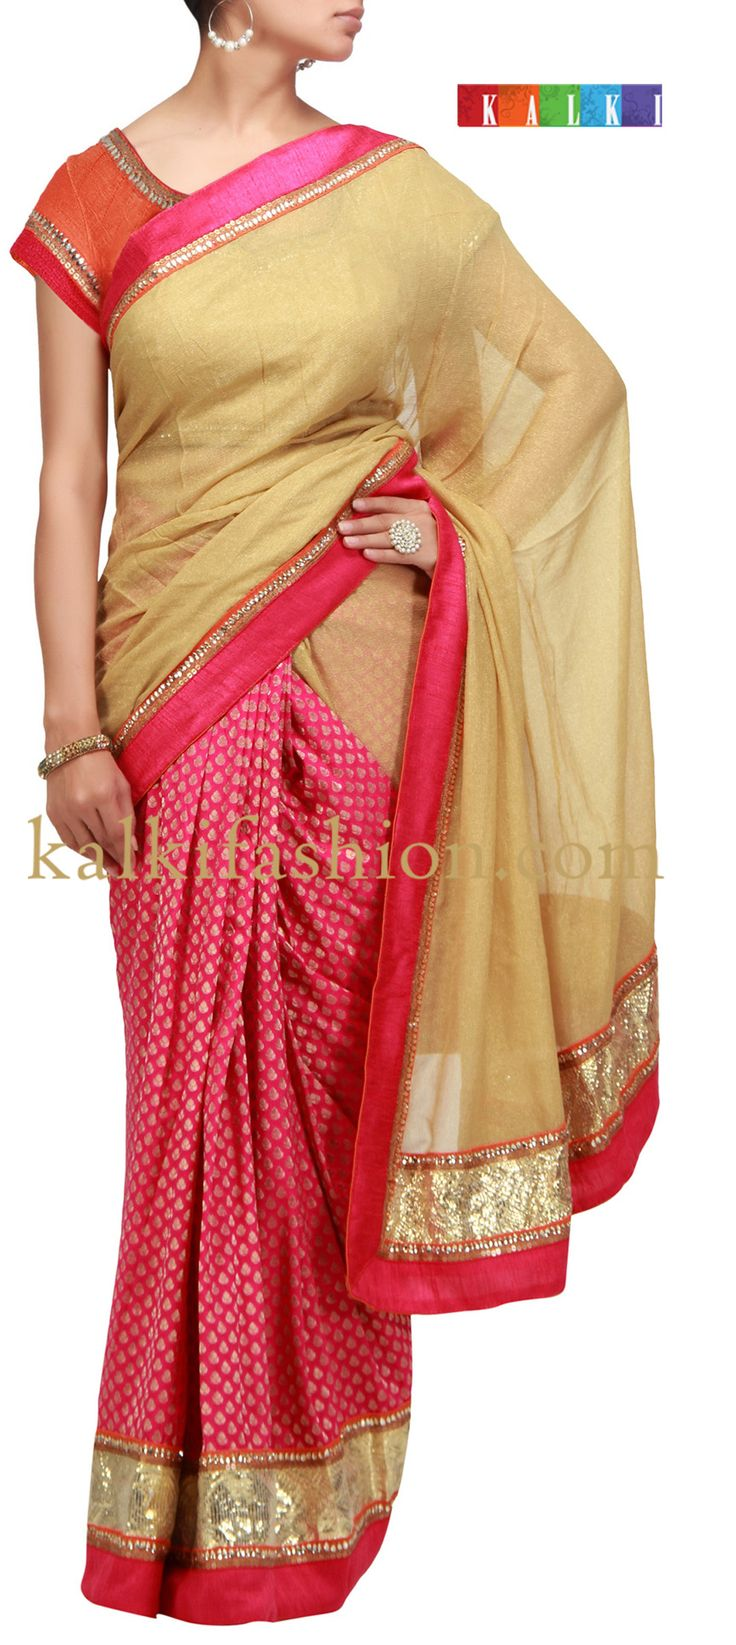 Buy it now  http://www.kalkifashion.com/half-and-half-saree-in-gold-and-pink-with-border.html Half and half saree in gold and pink with border